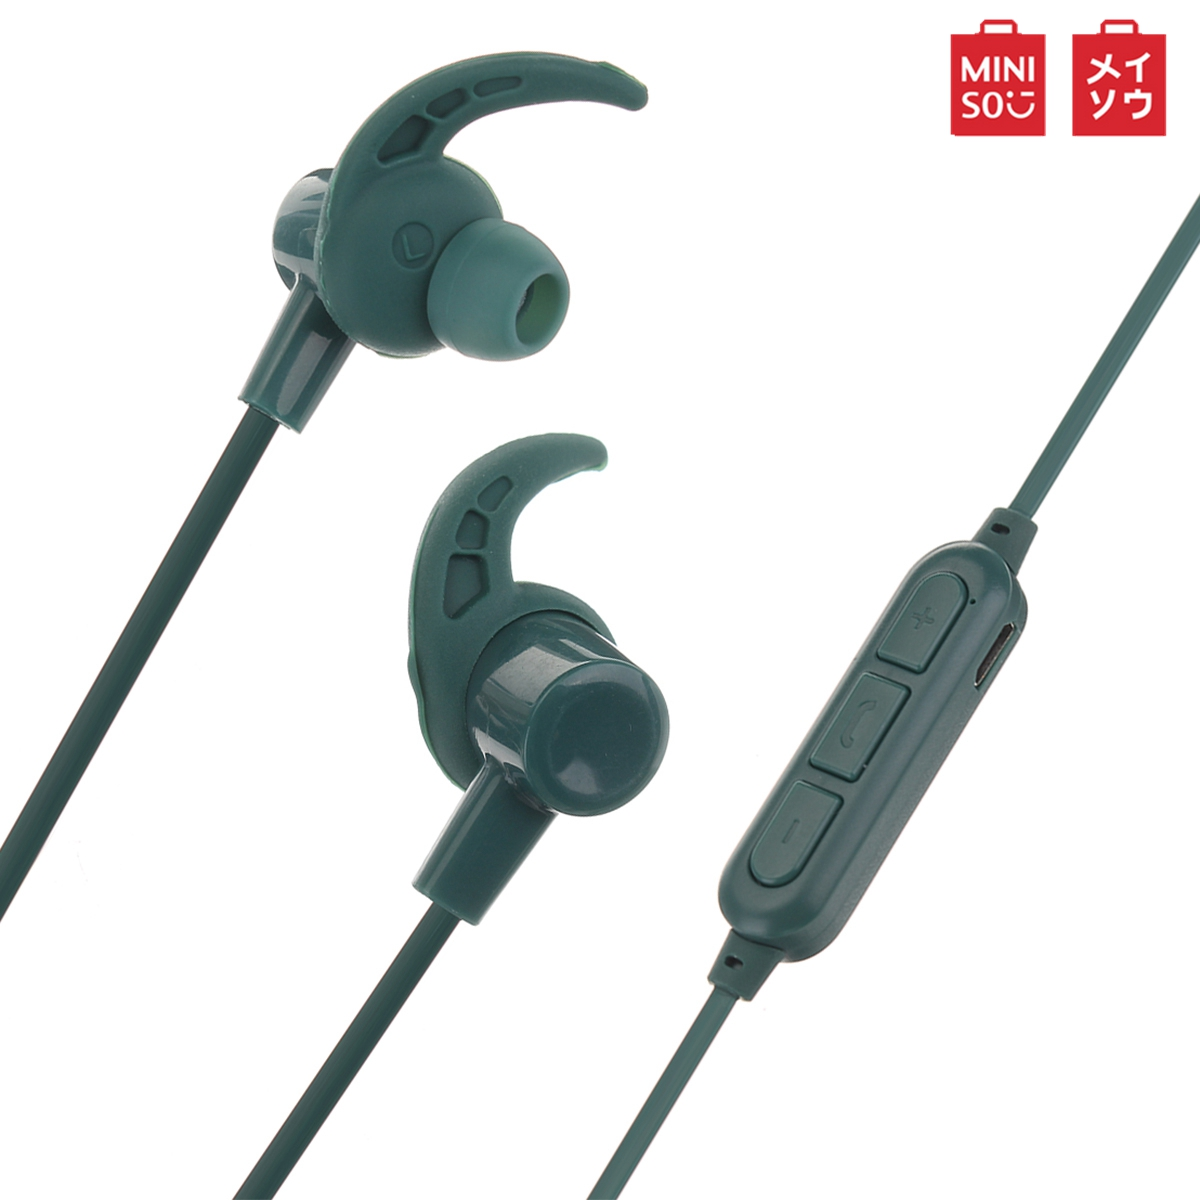 MINISO BT307 Magnetic Wireless Headphones Bluetooth Earphone Stereo Earphone Sport Headset  Concision Style For Phones